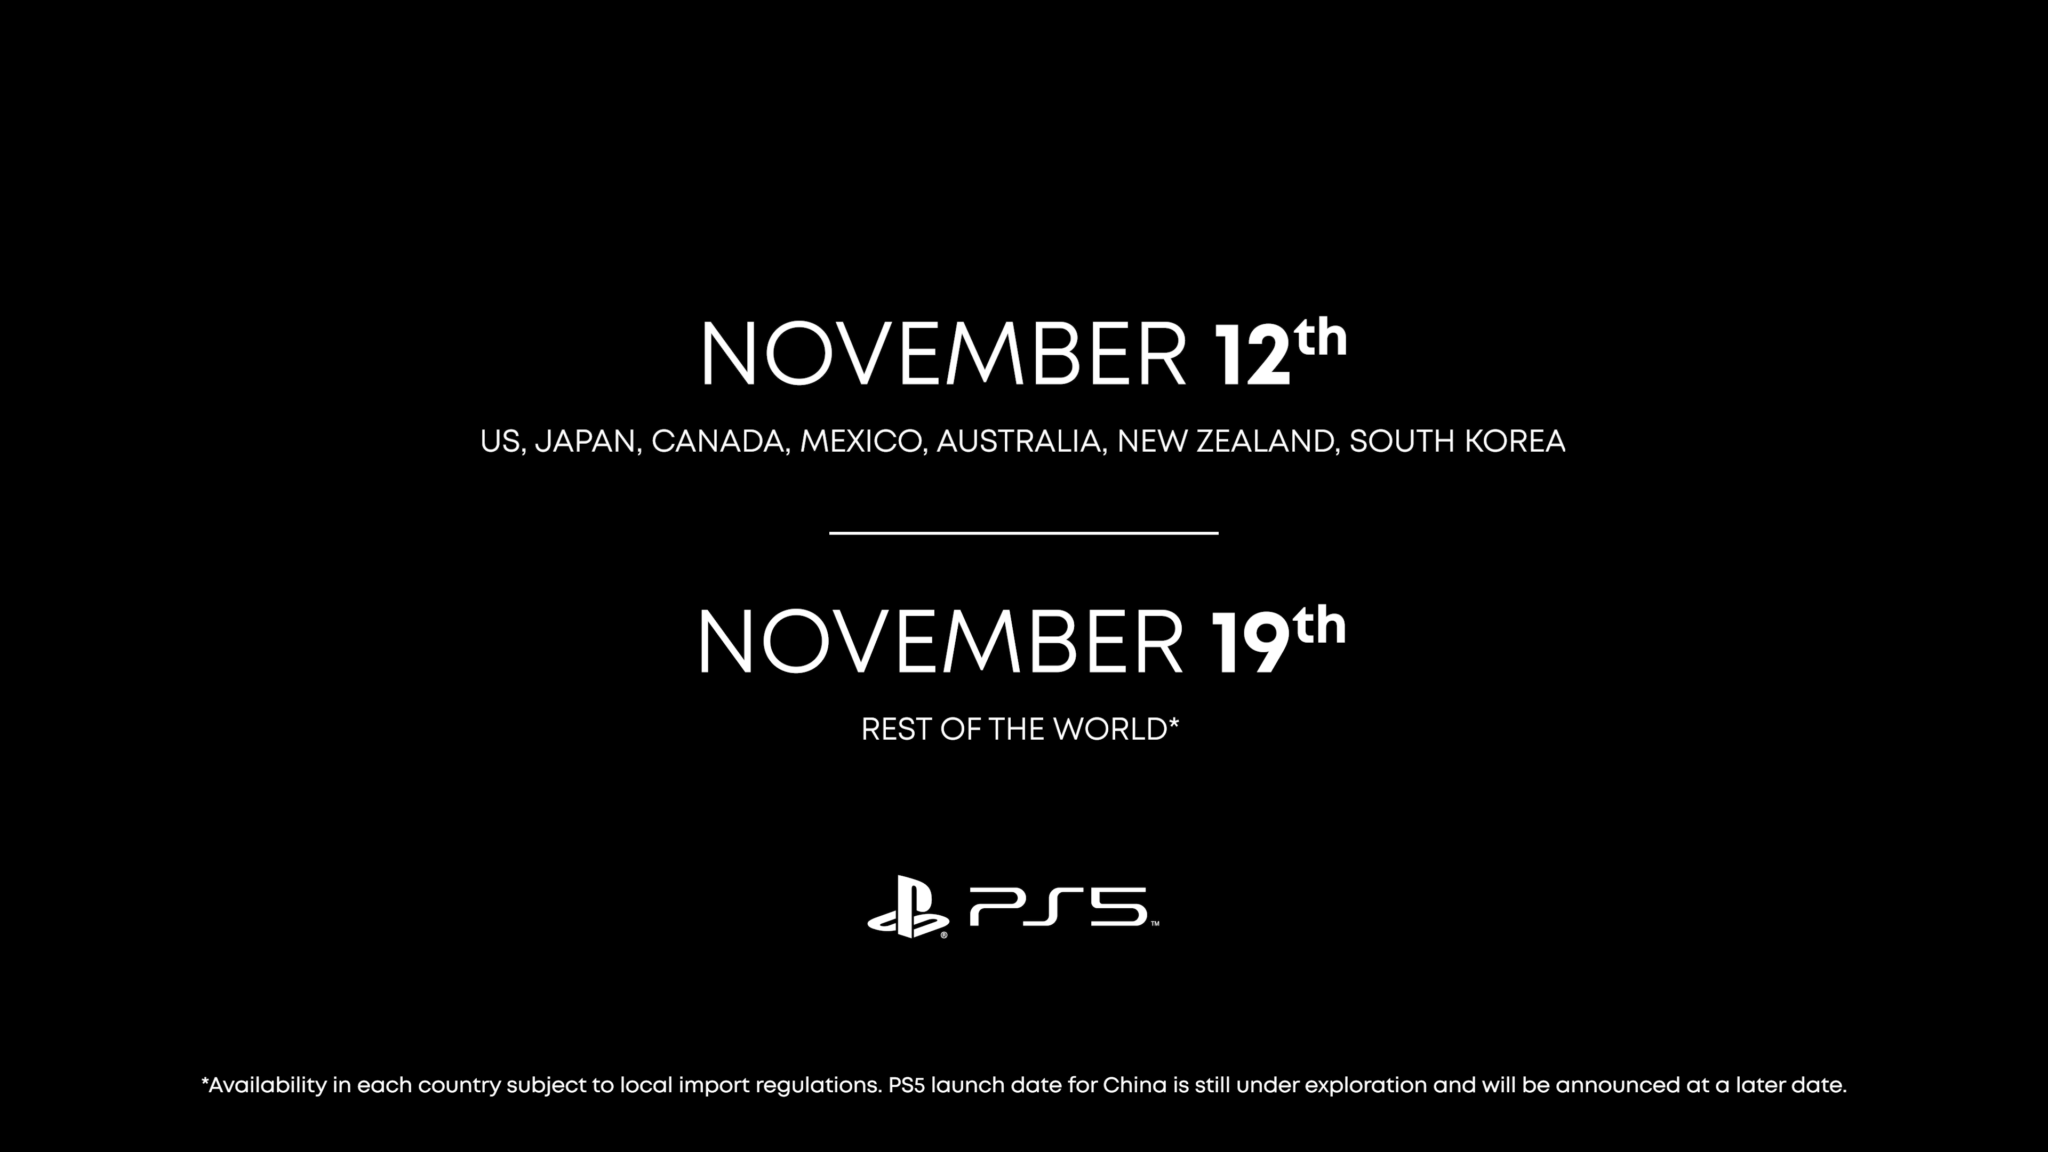 Sony PS5 launching in November